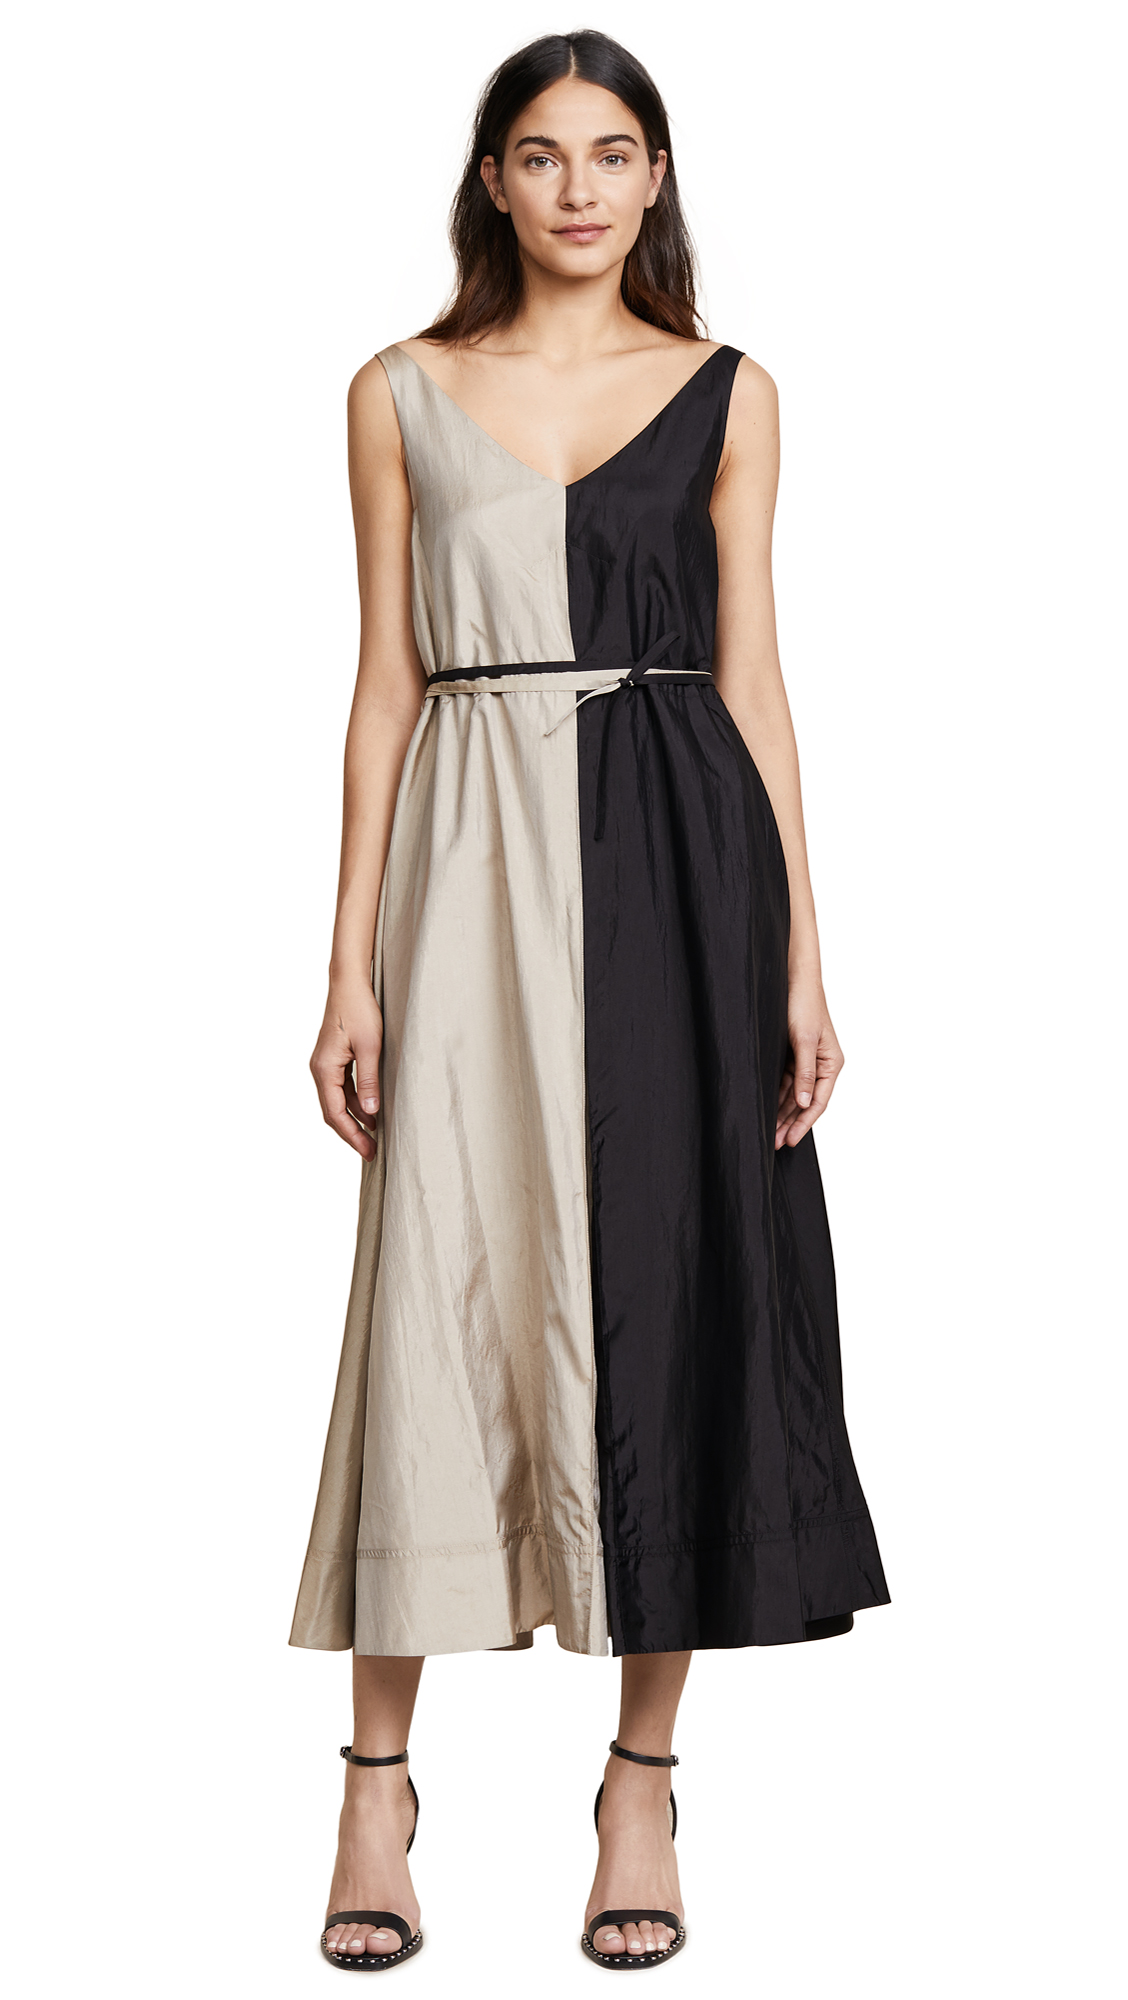 Nina Ricci Parachute Dress - Black/Linen